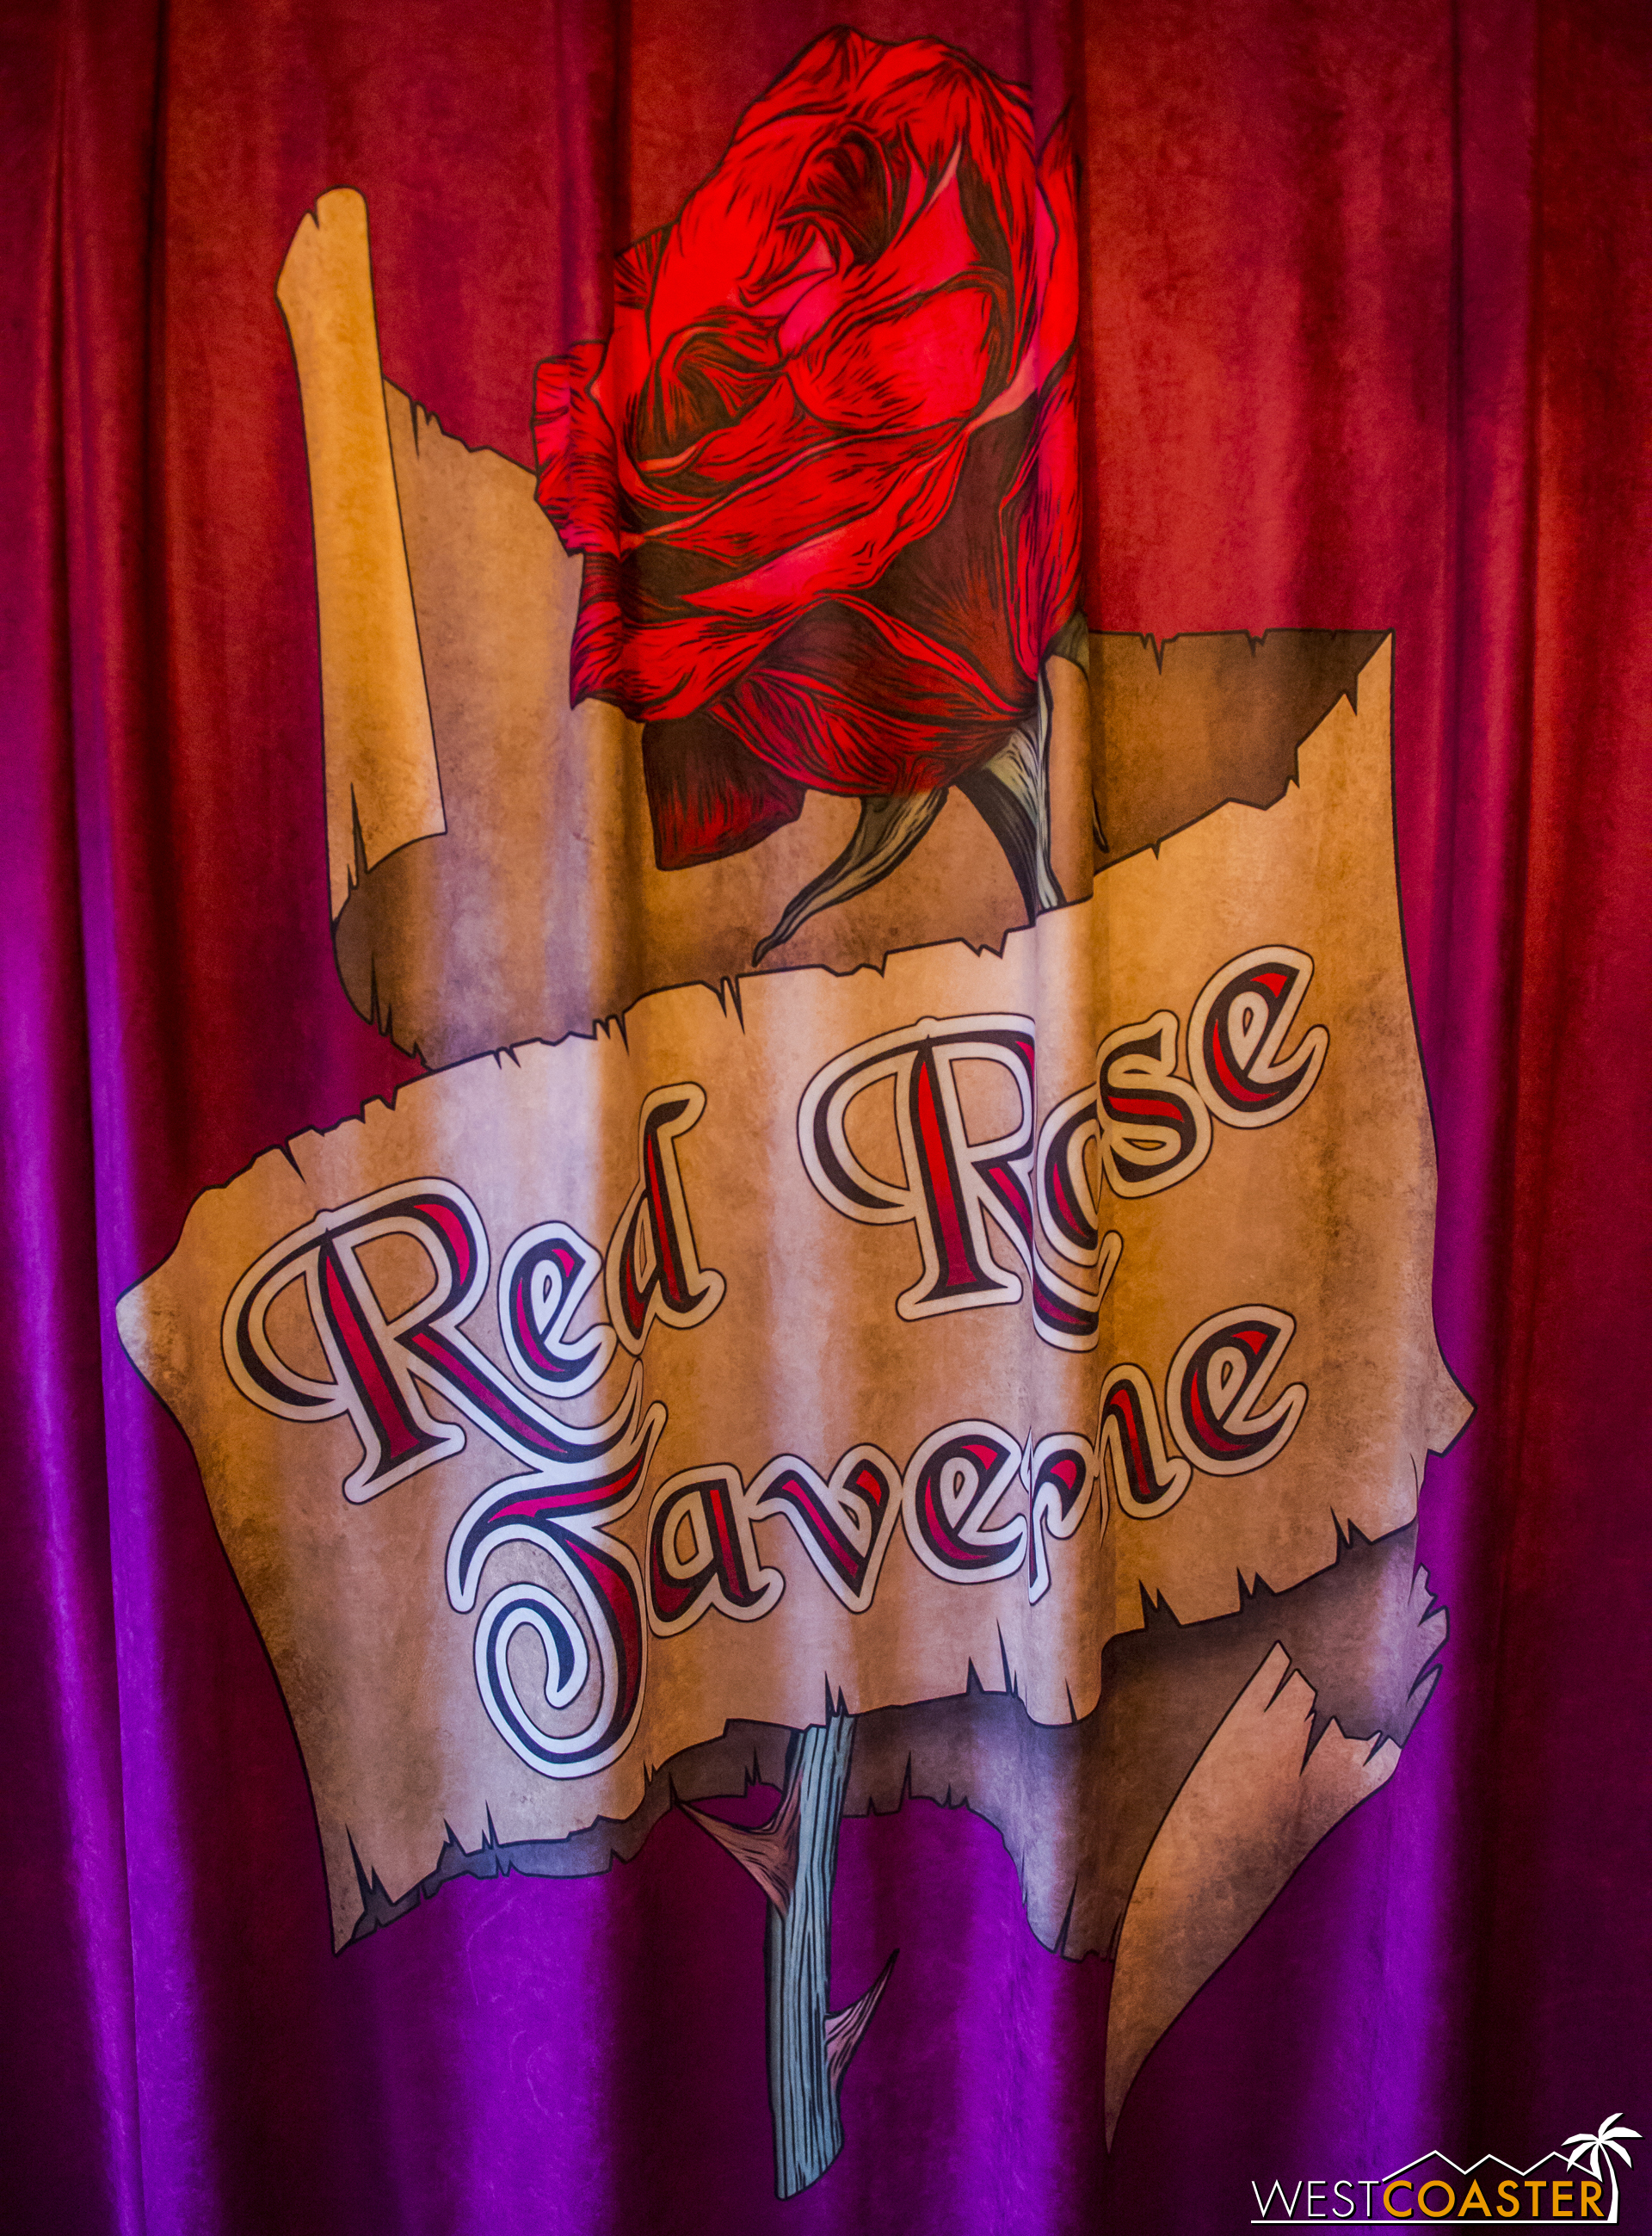 Entering the building, curtains with the Red Rose Taverne logo drape both sides, covering up the regular Pinocchio murals.